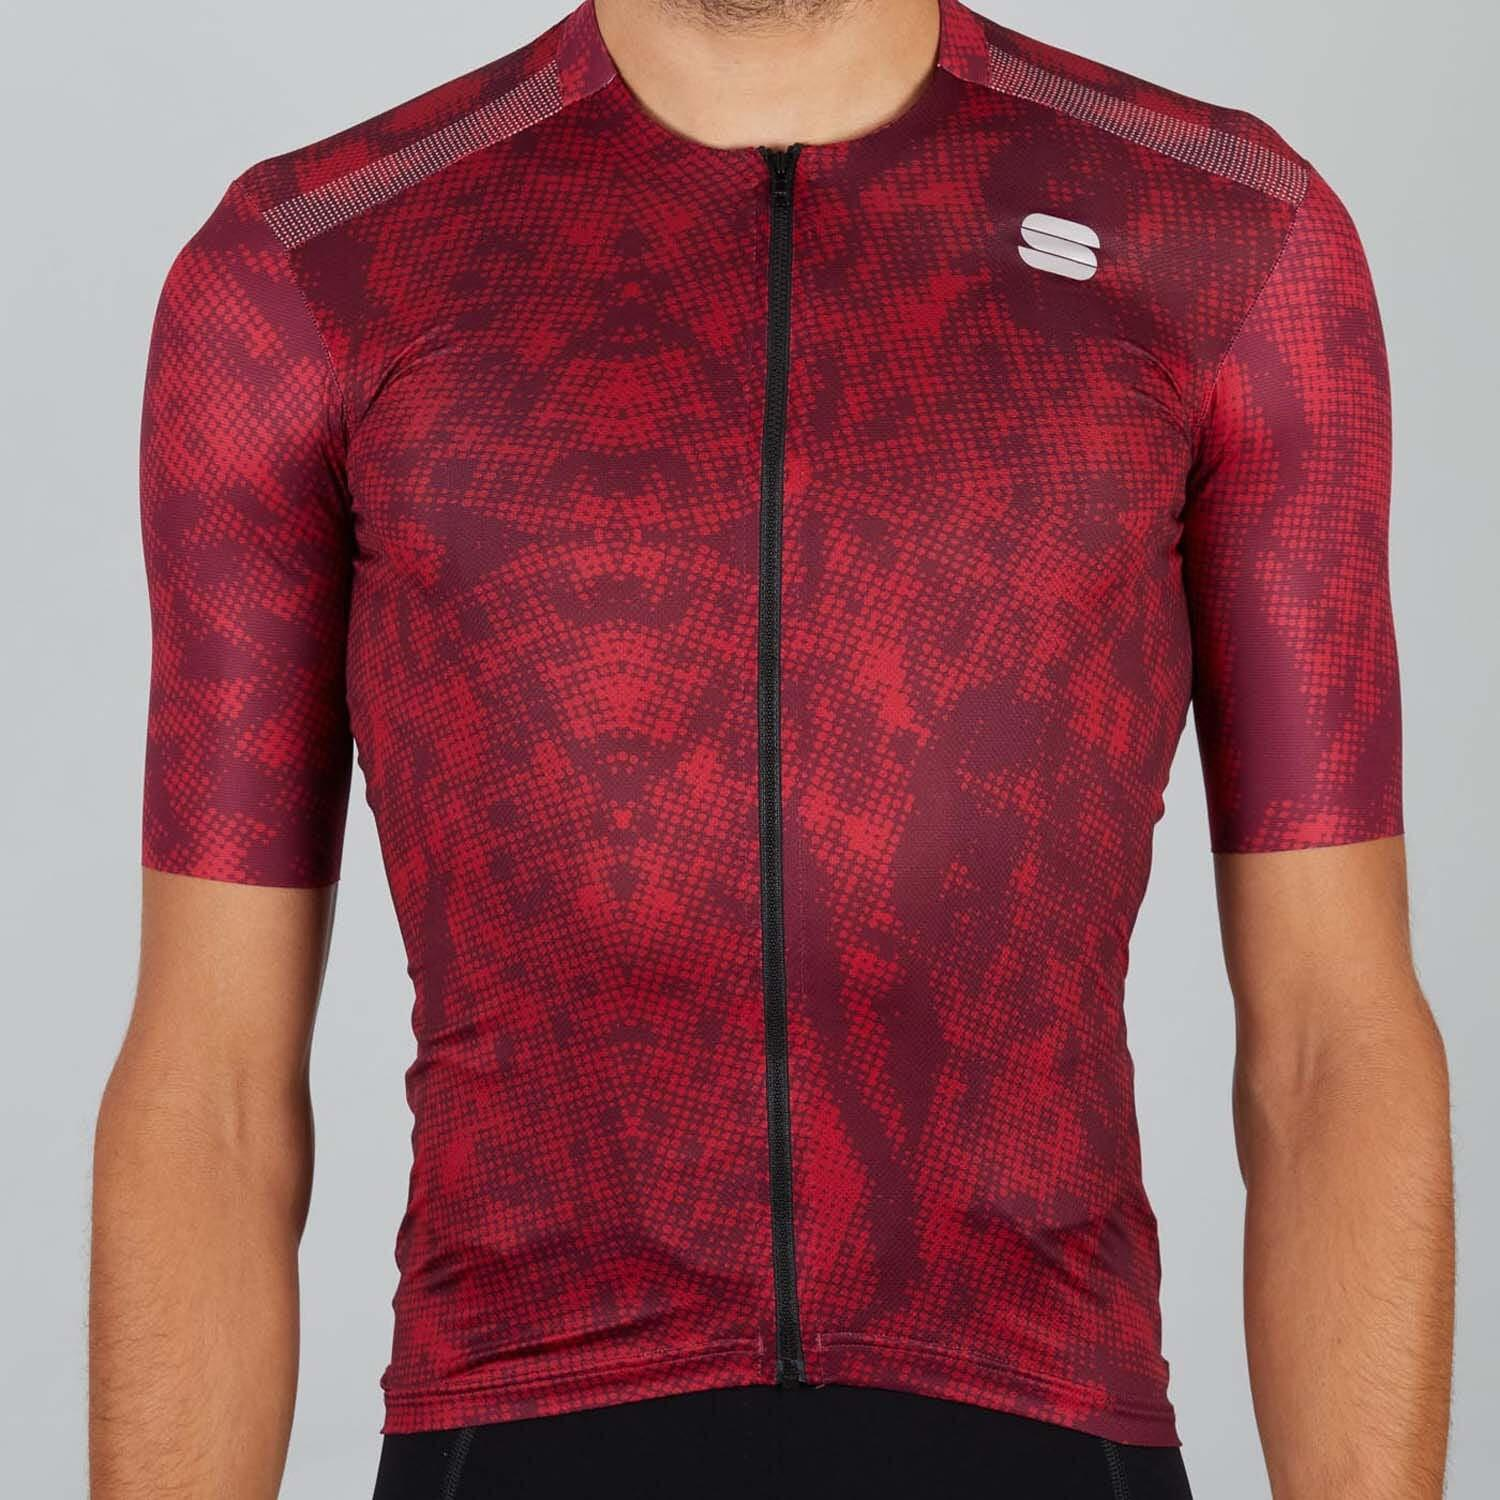 Sportful-Sportful Escape Supergiara Jersey-Red Wine-S-SF210246052-saddleback-elite-performance-cycling